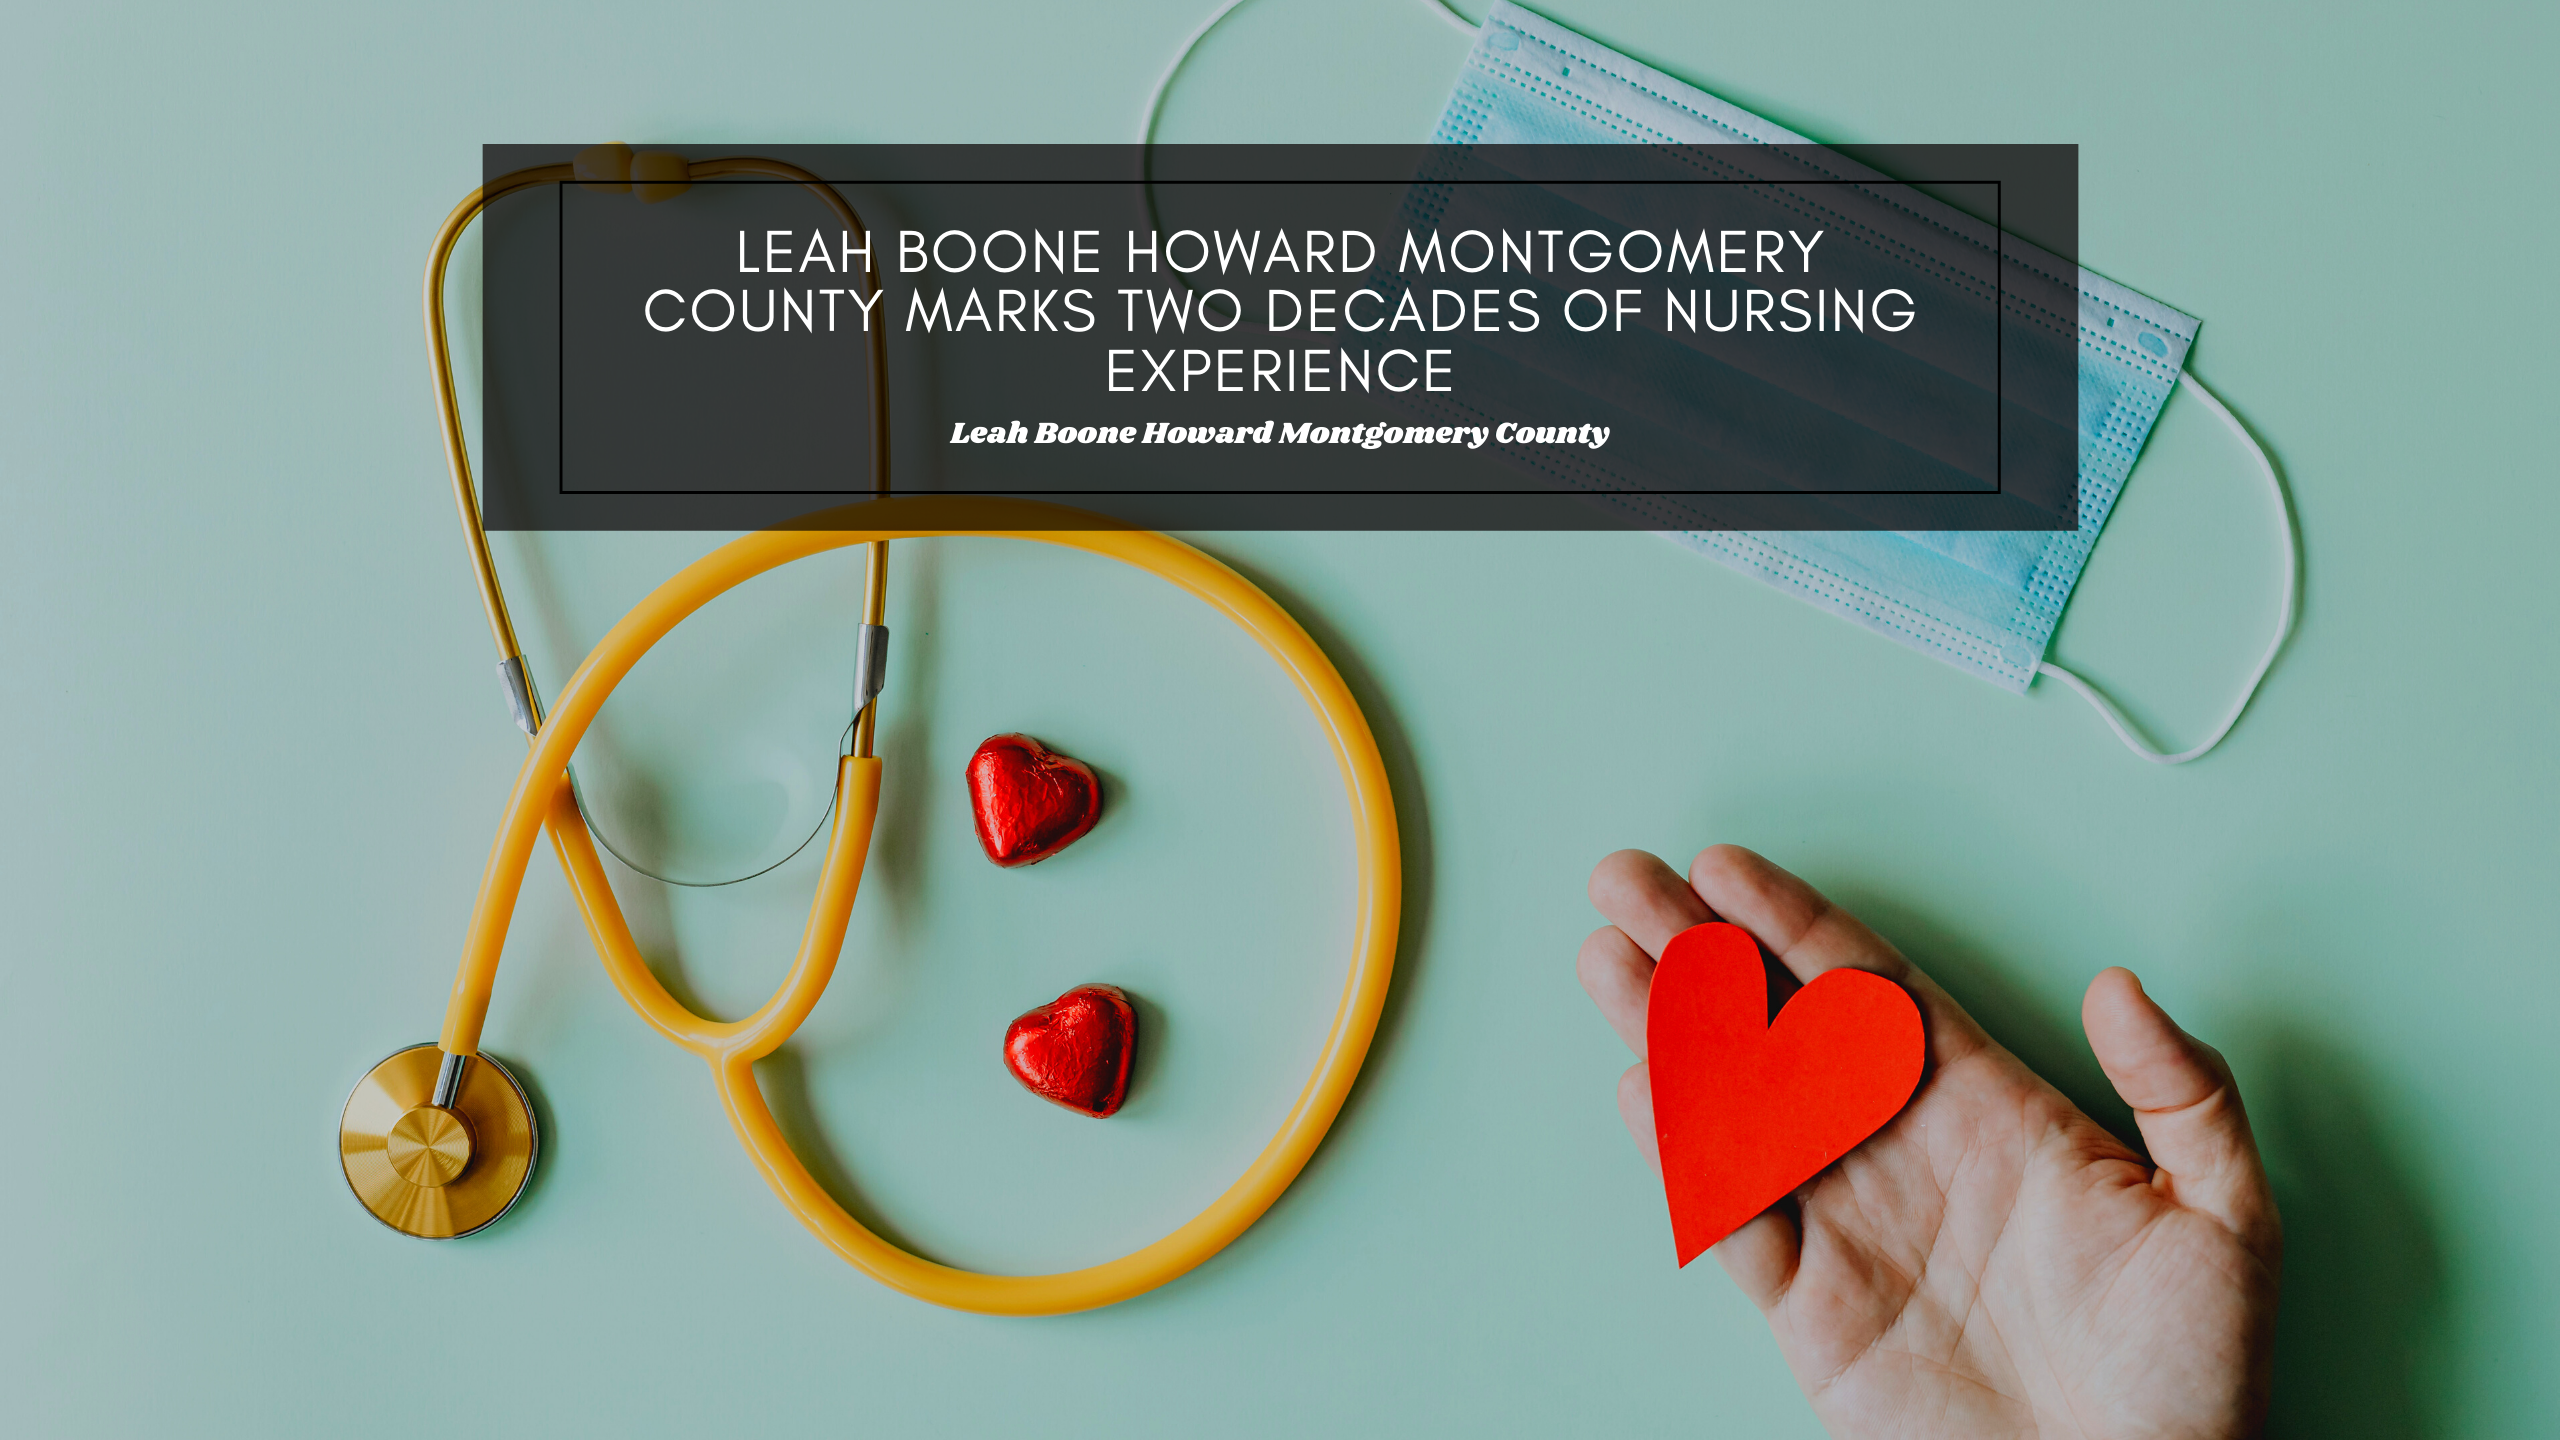 Leah Boone Howard Montgomery County Marks Two Decades of Nursing Experience